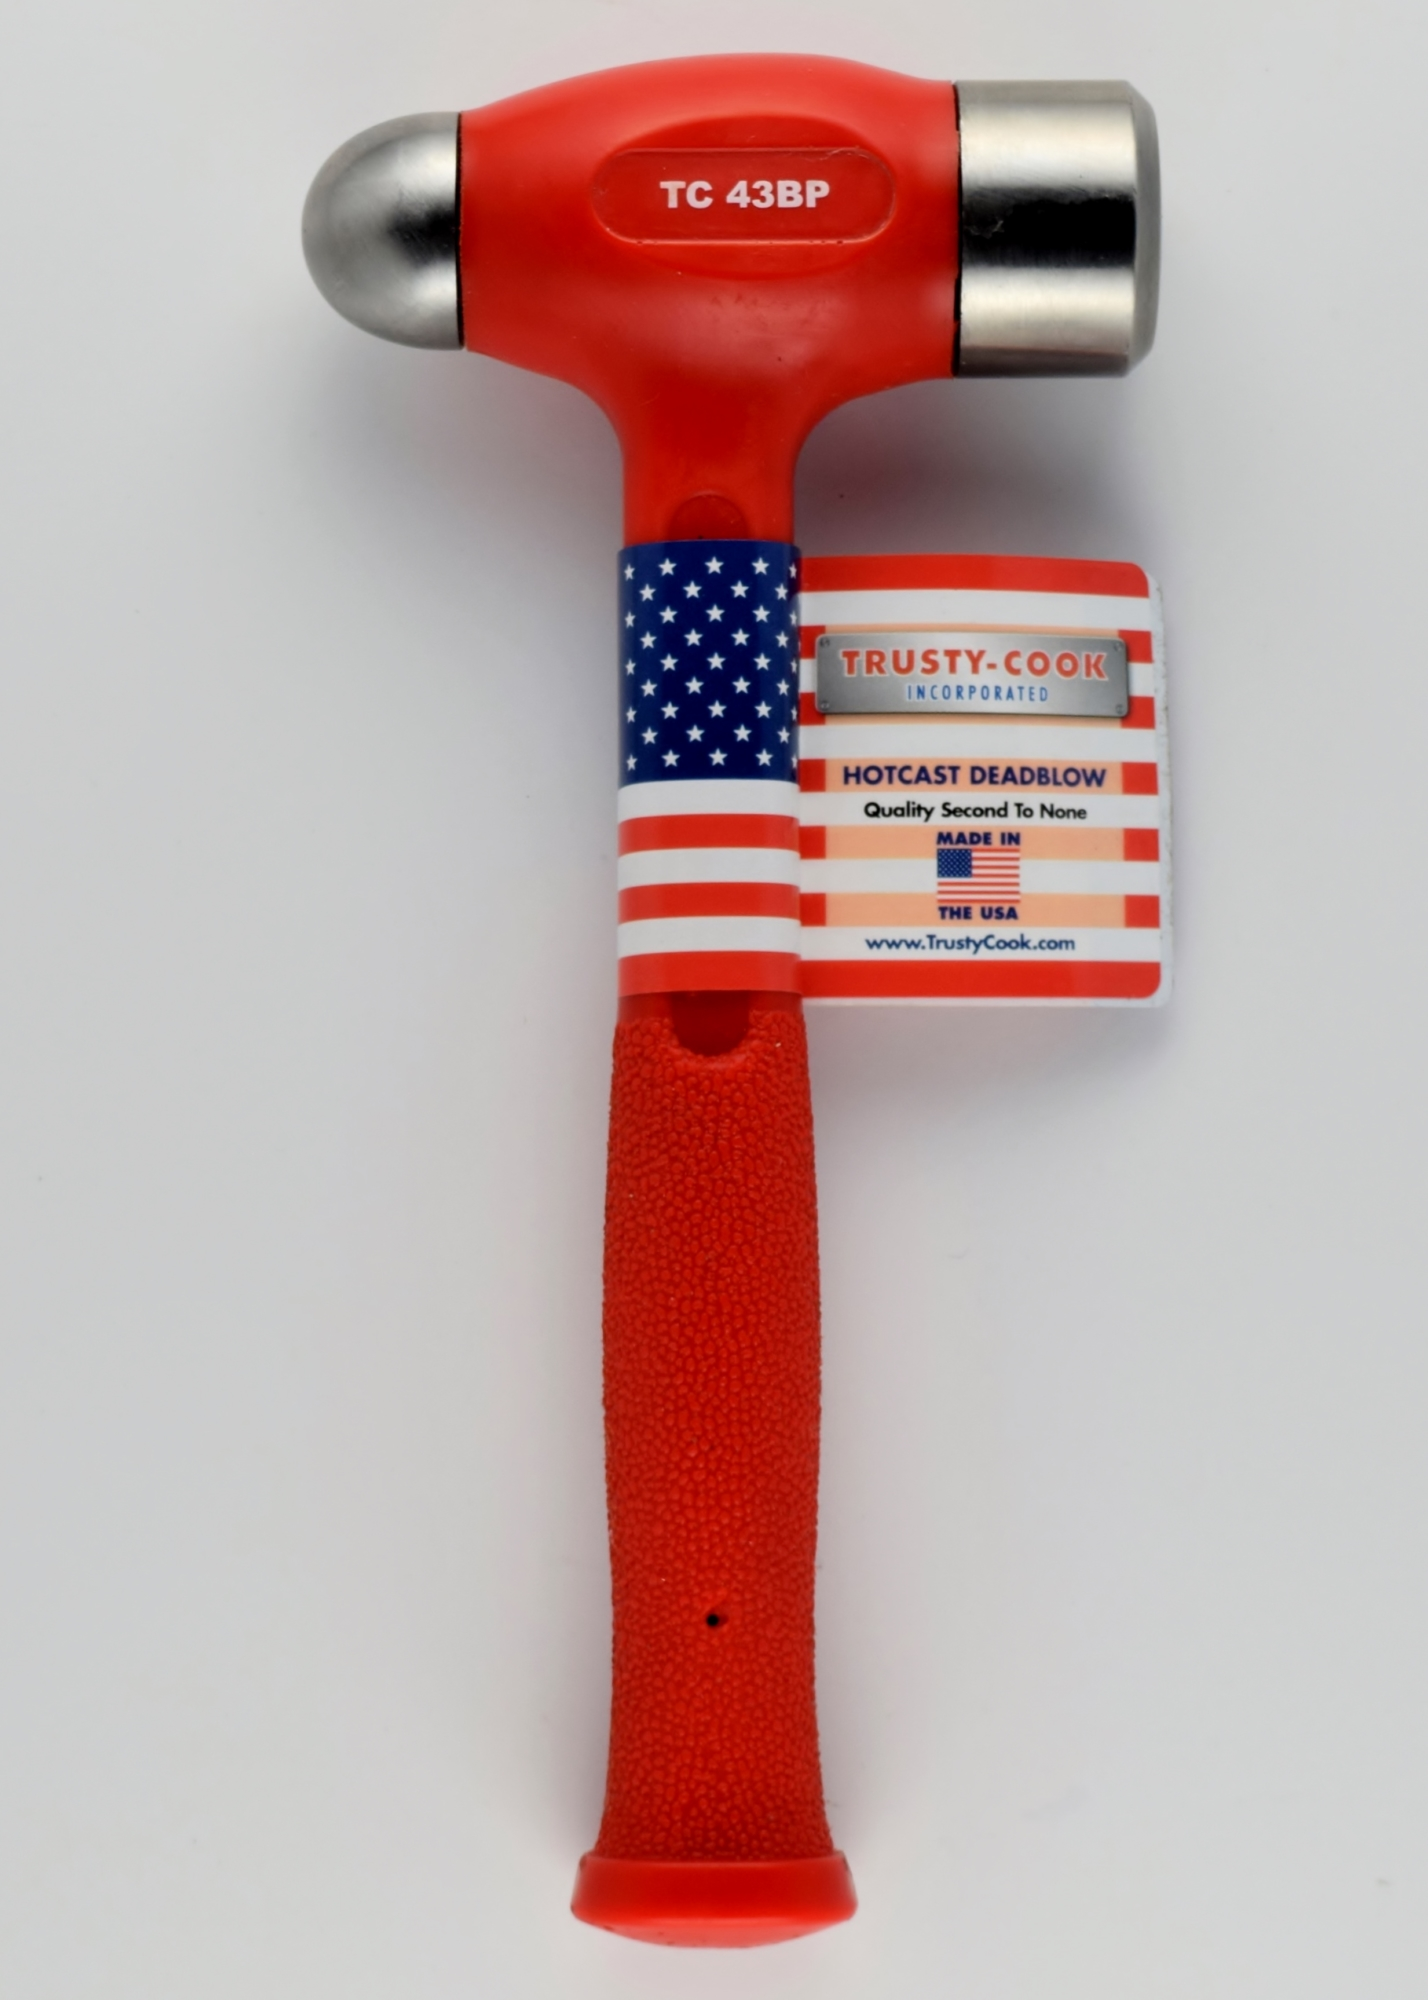 43 Oz Dead Blow Ball Peen Hammer Theres so many kinds of hammers and mallets and each is the right tool for a job. 43 oz ball peen dead blow model tc43bp